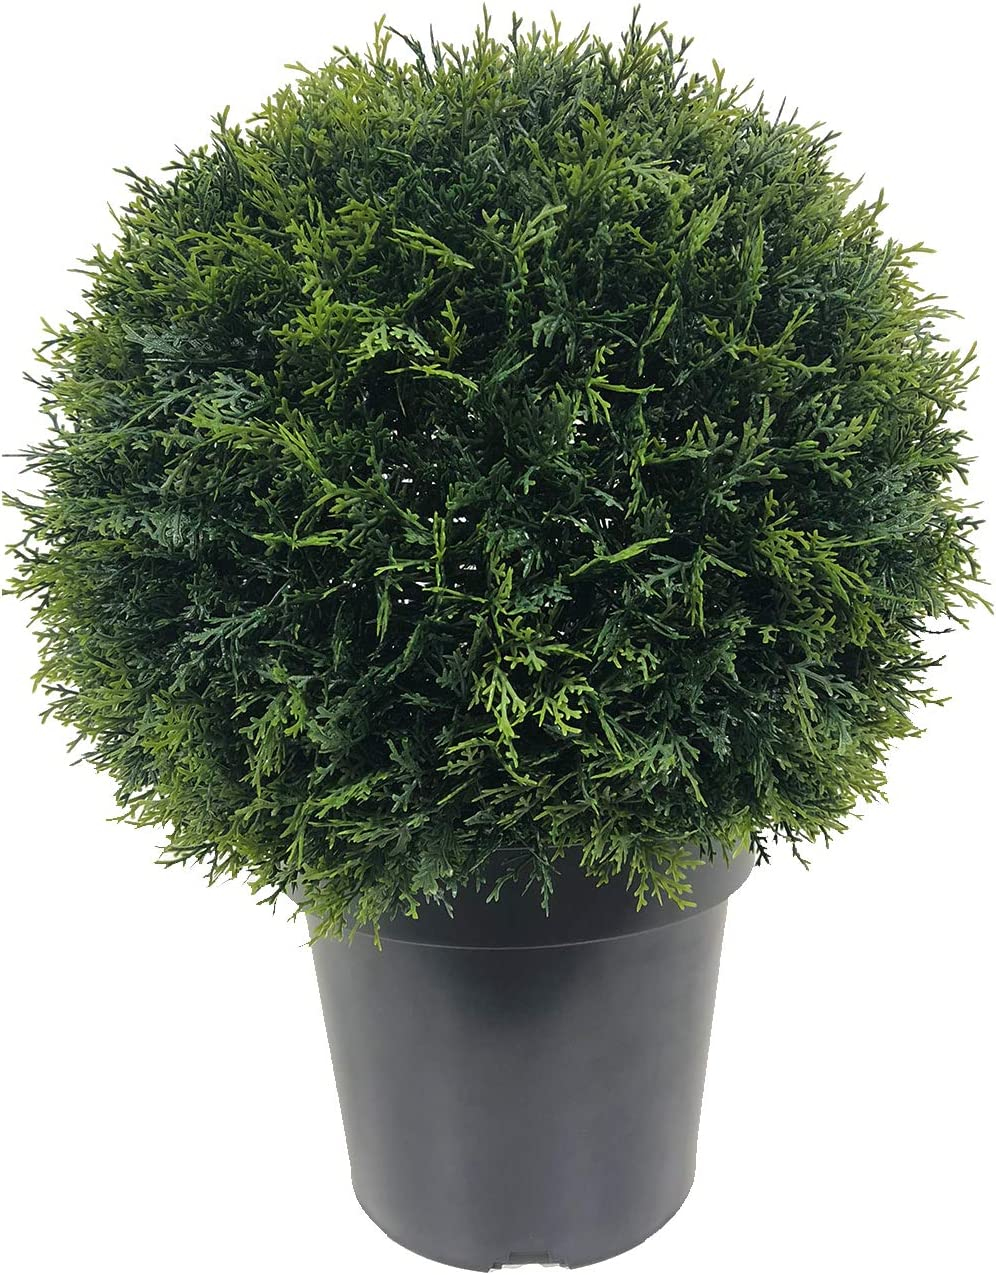 Artificial Topiary Tree Cypress Our shop Cheap mail order specialty store OFFers the best service C Spiral Outdoor